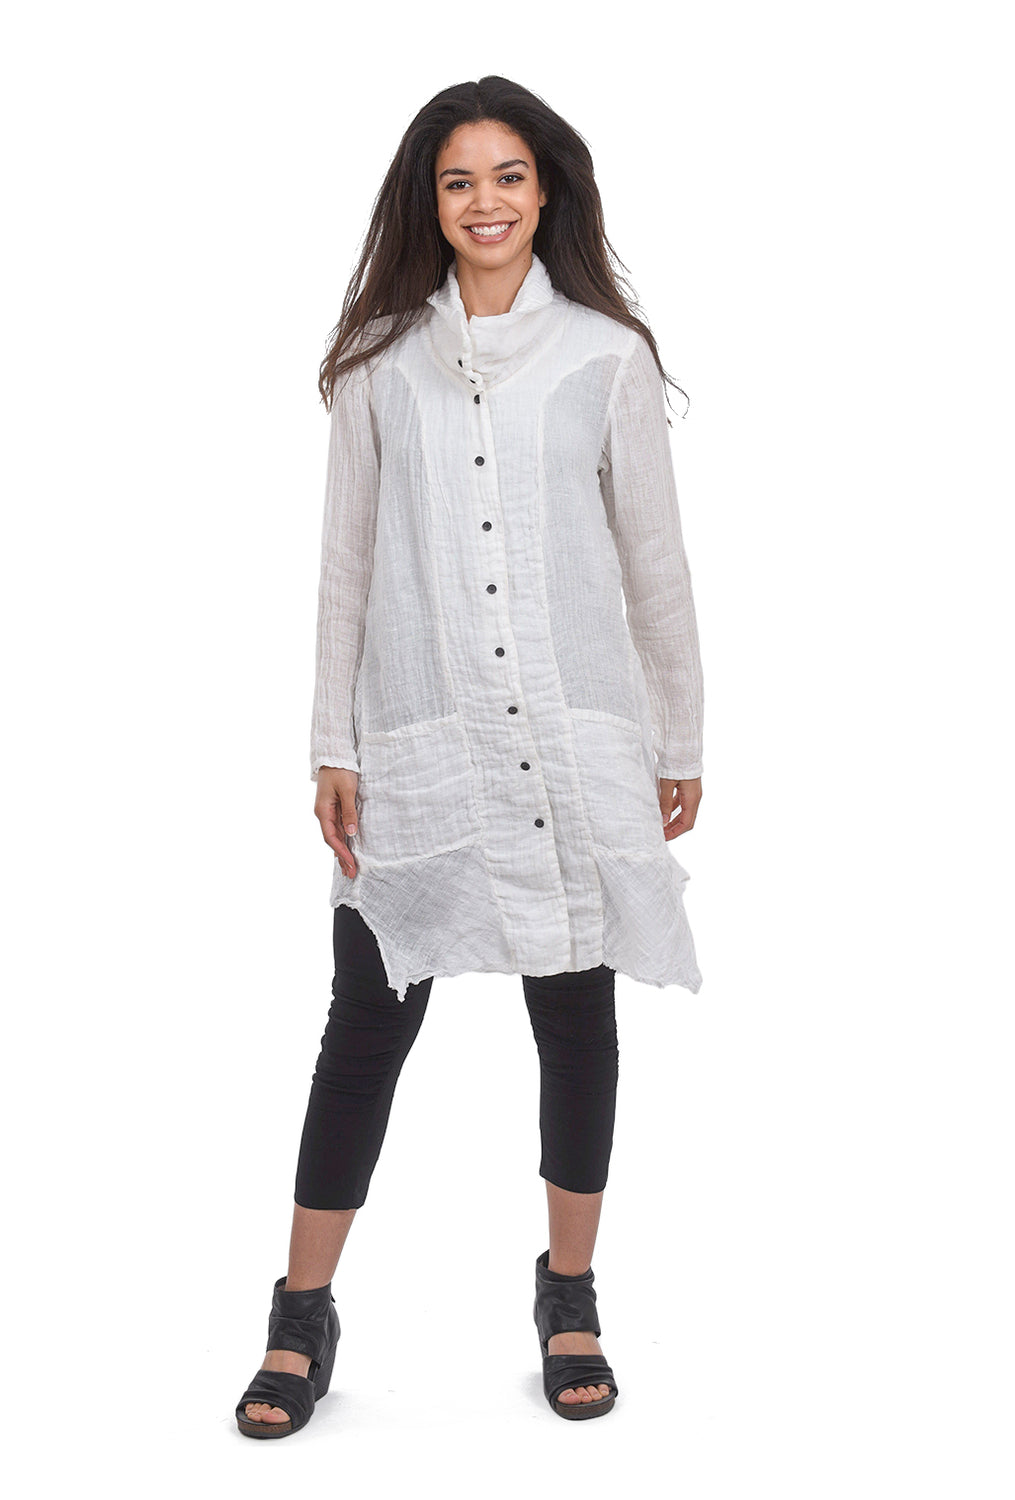 Cynthia Ashby Adore Tunic Jacket, White